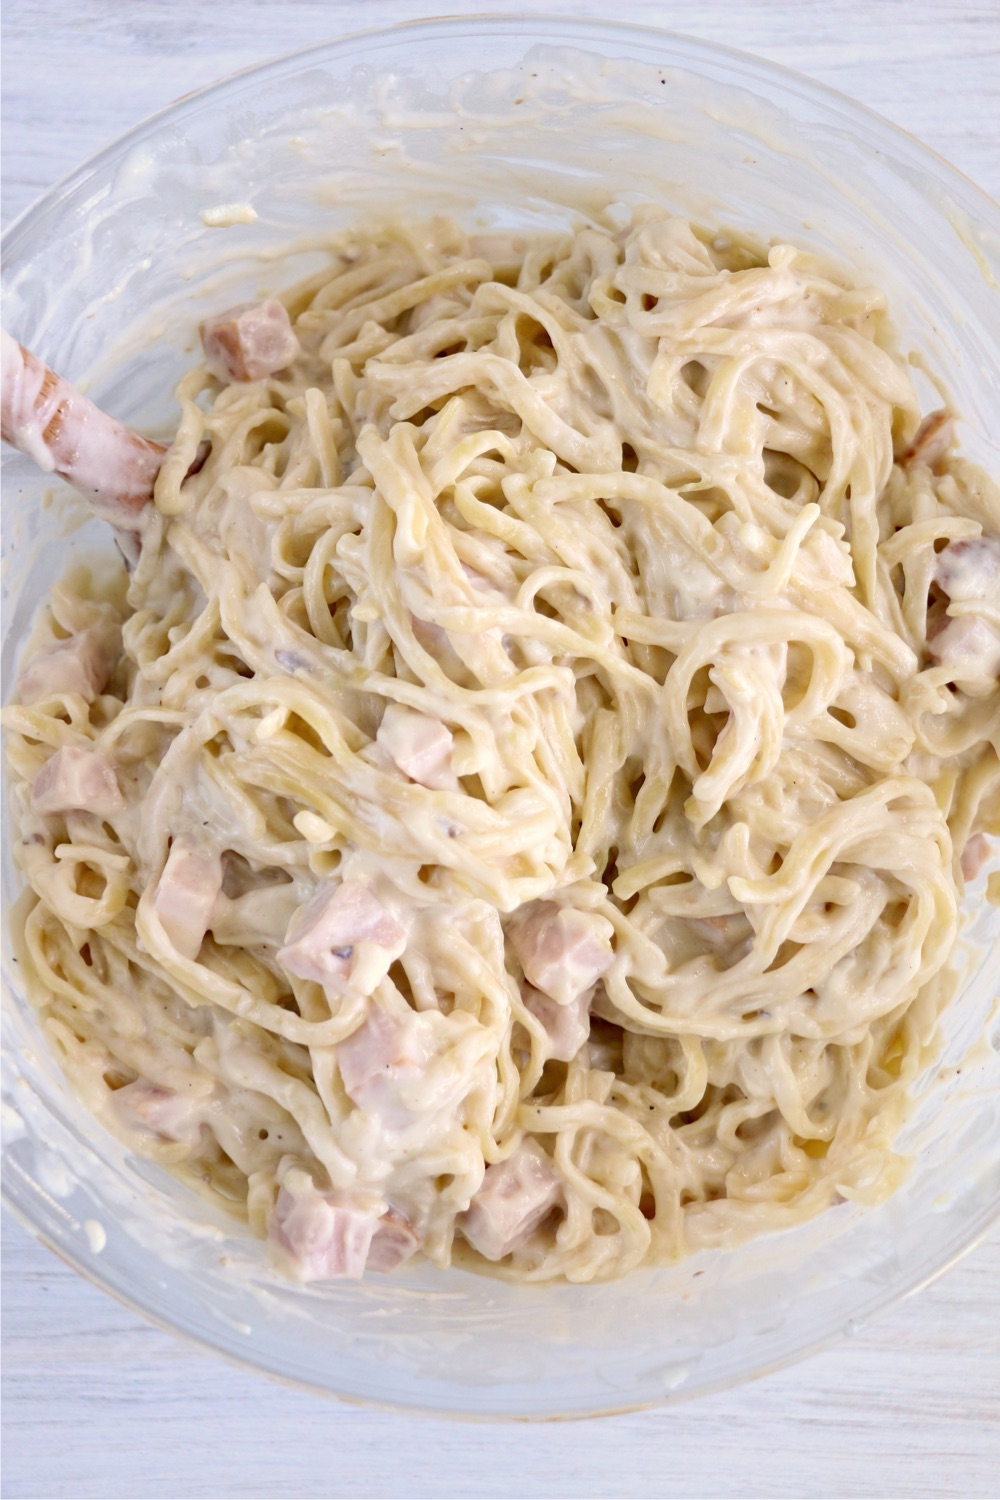 Turkey, noodles and sauce mixed together in bowl